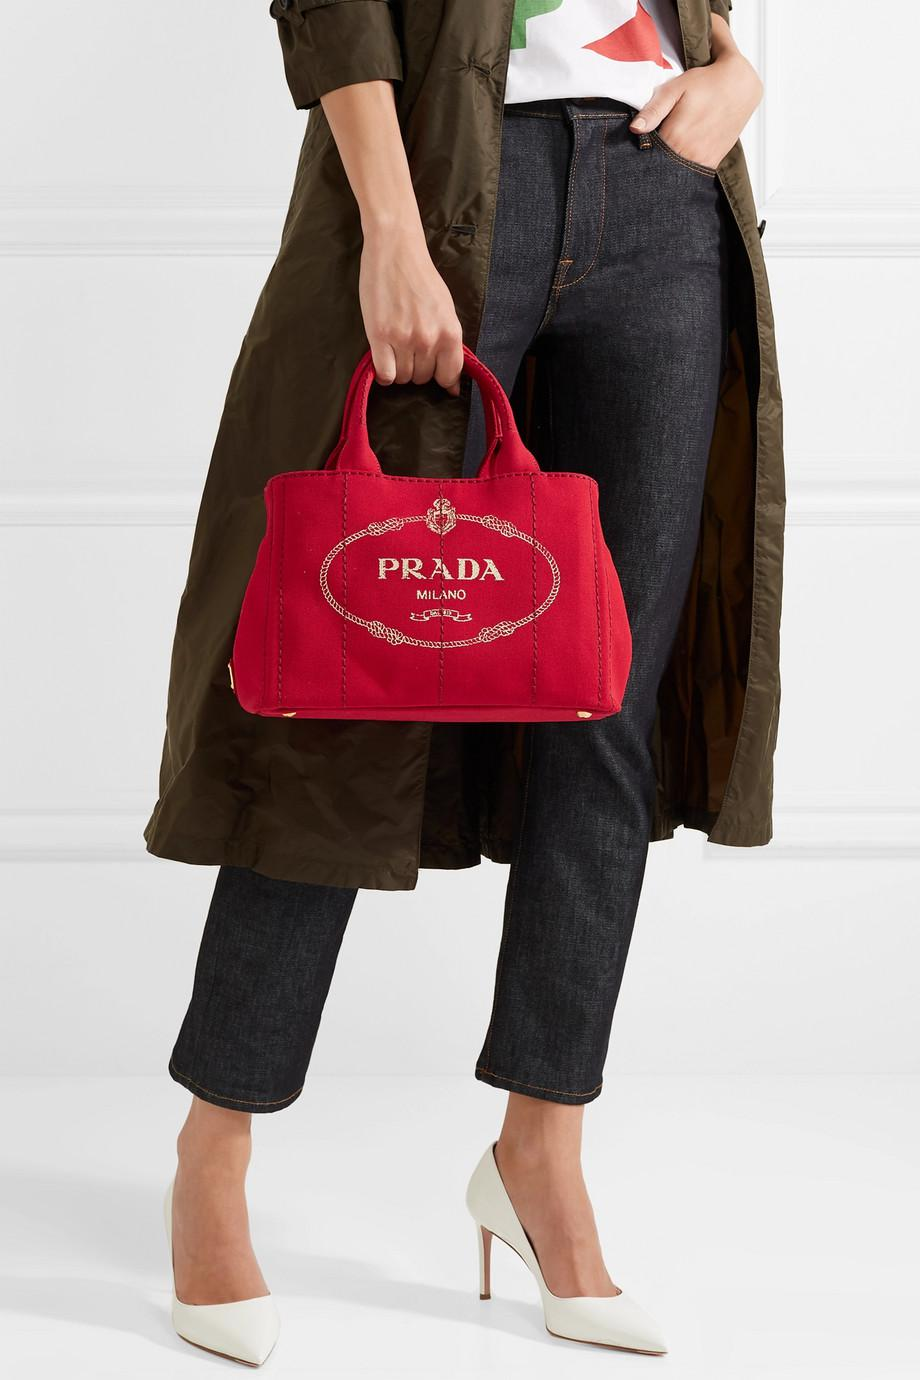 89b7d54067723d Prada Giardiniera Printed Canvas Tote in Red - Lyst